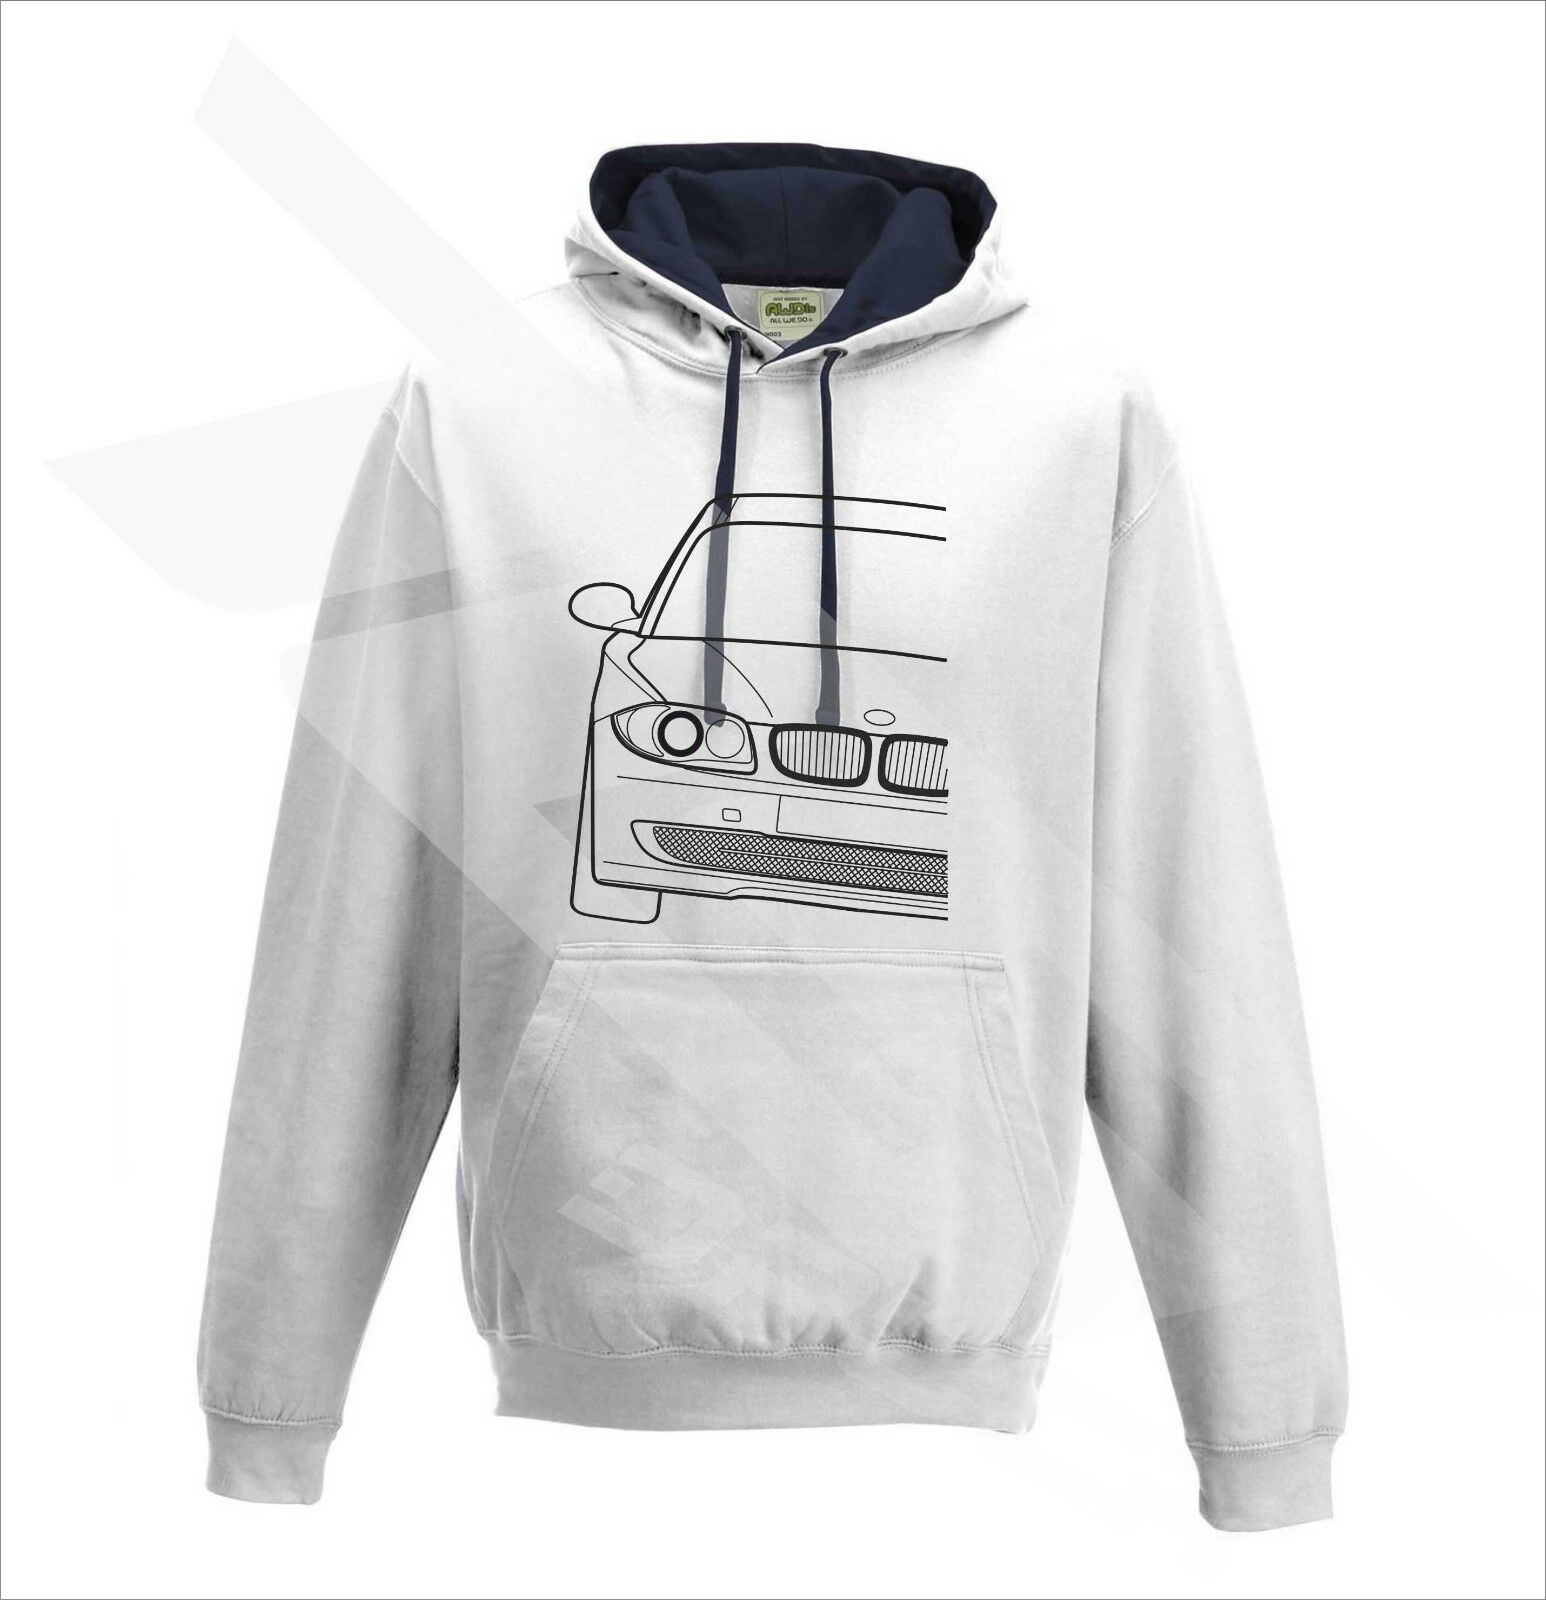 BMW 1er E81 Hoodie Pullover